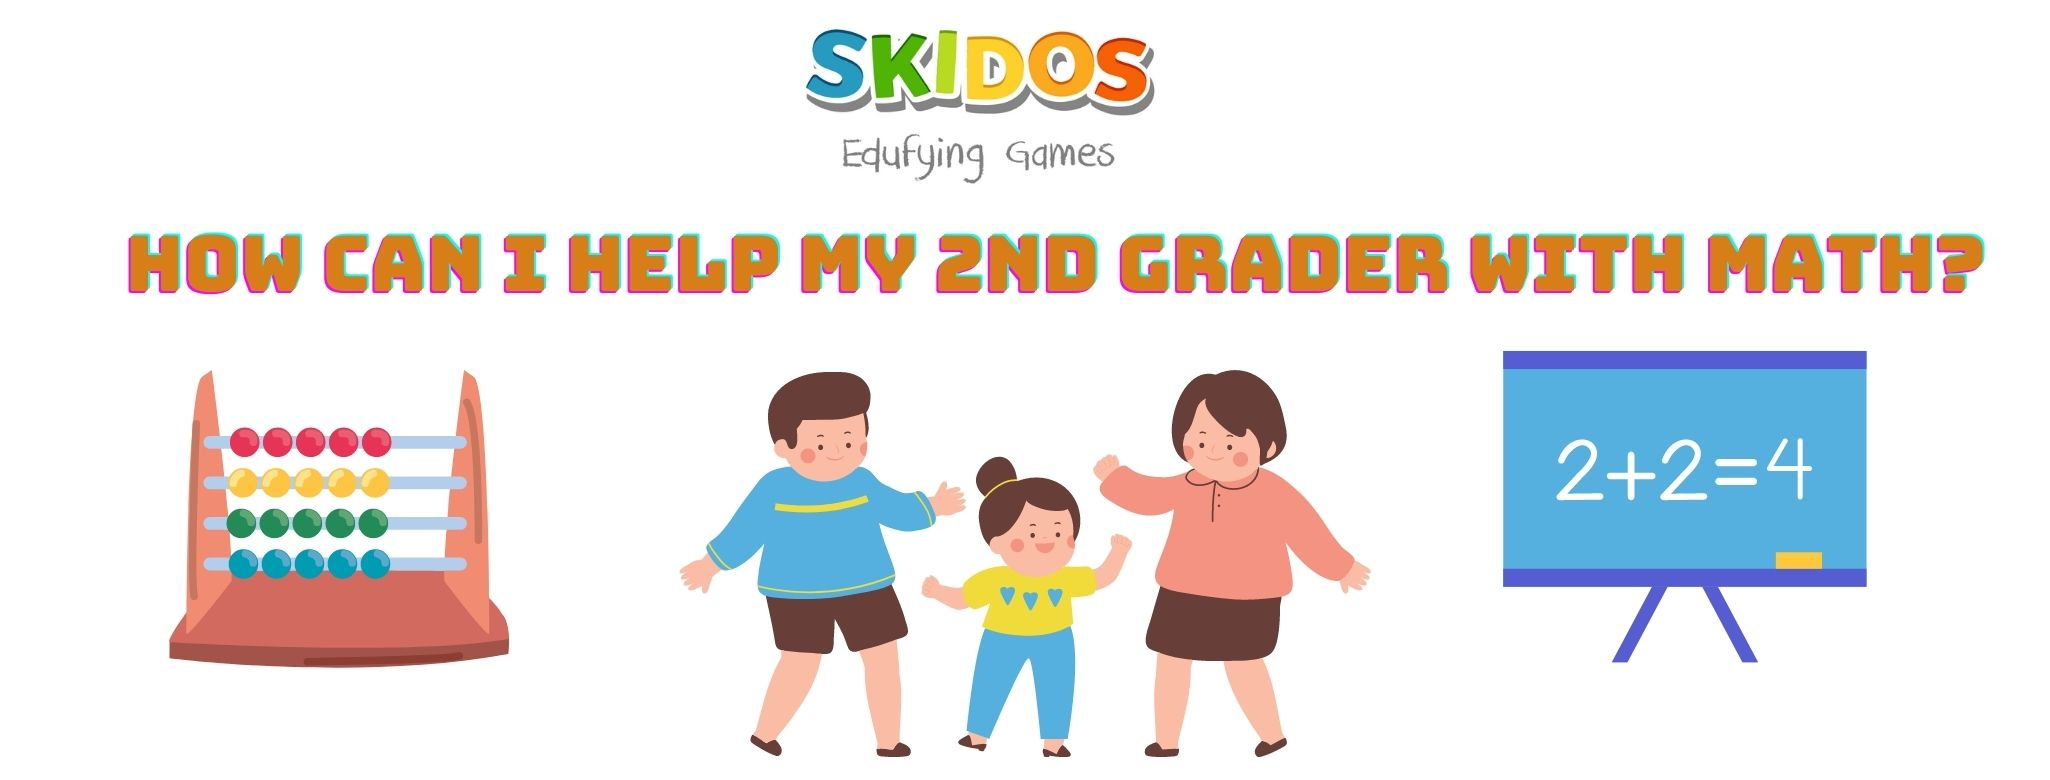 How can I help my 2nd grader with math with tips for second grade in math